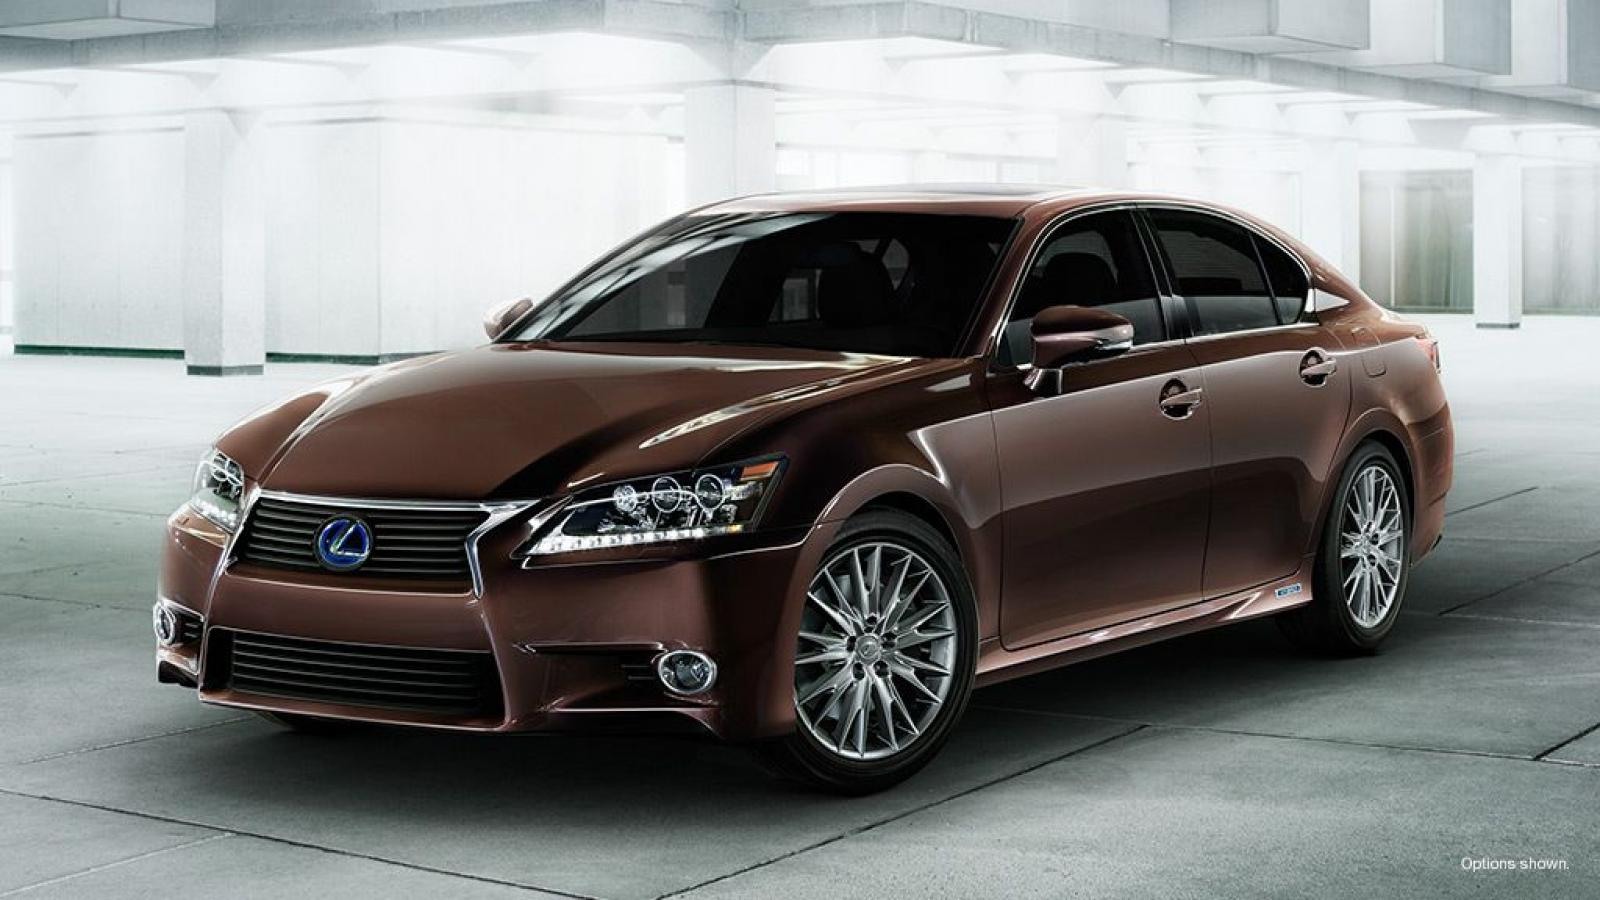 2014 lexus gs 450h information and photos zombiedrive. Black Bedroom Furniture Sets. Home Design Ideas